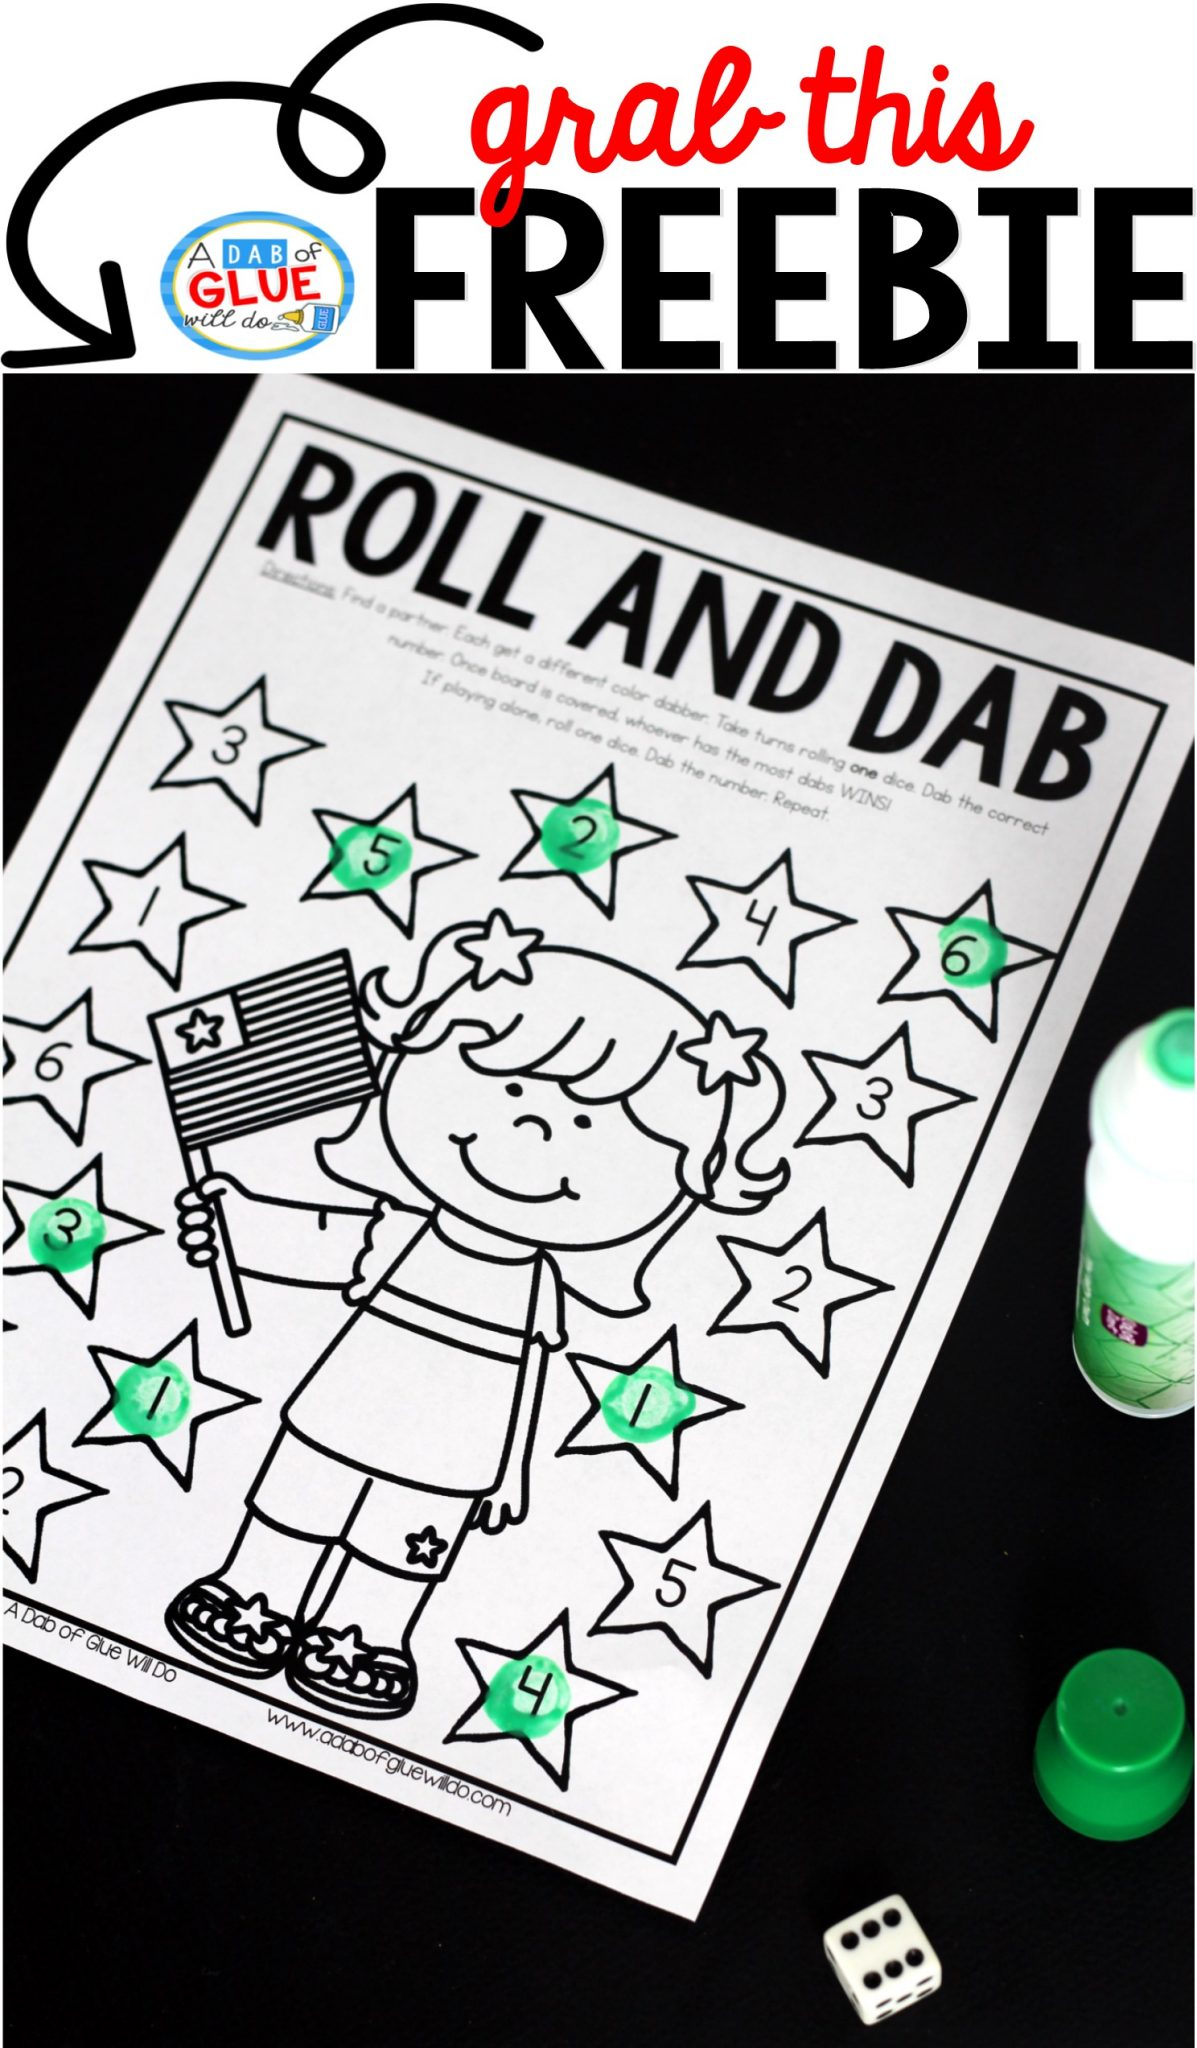 Patriotic Roll and Dab is a fun and engaging activity for students to practice their math skills. There are three levels to allow for a variety of ages or skill levels.